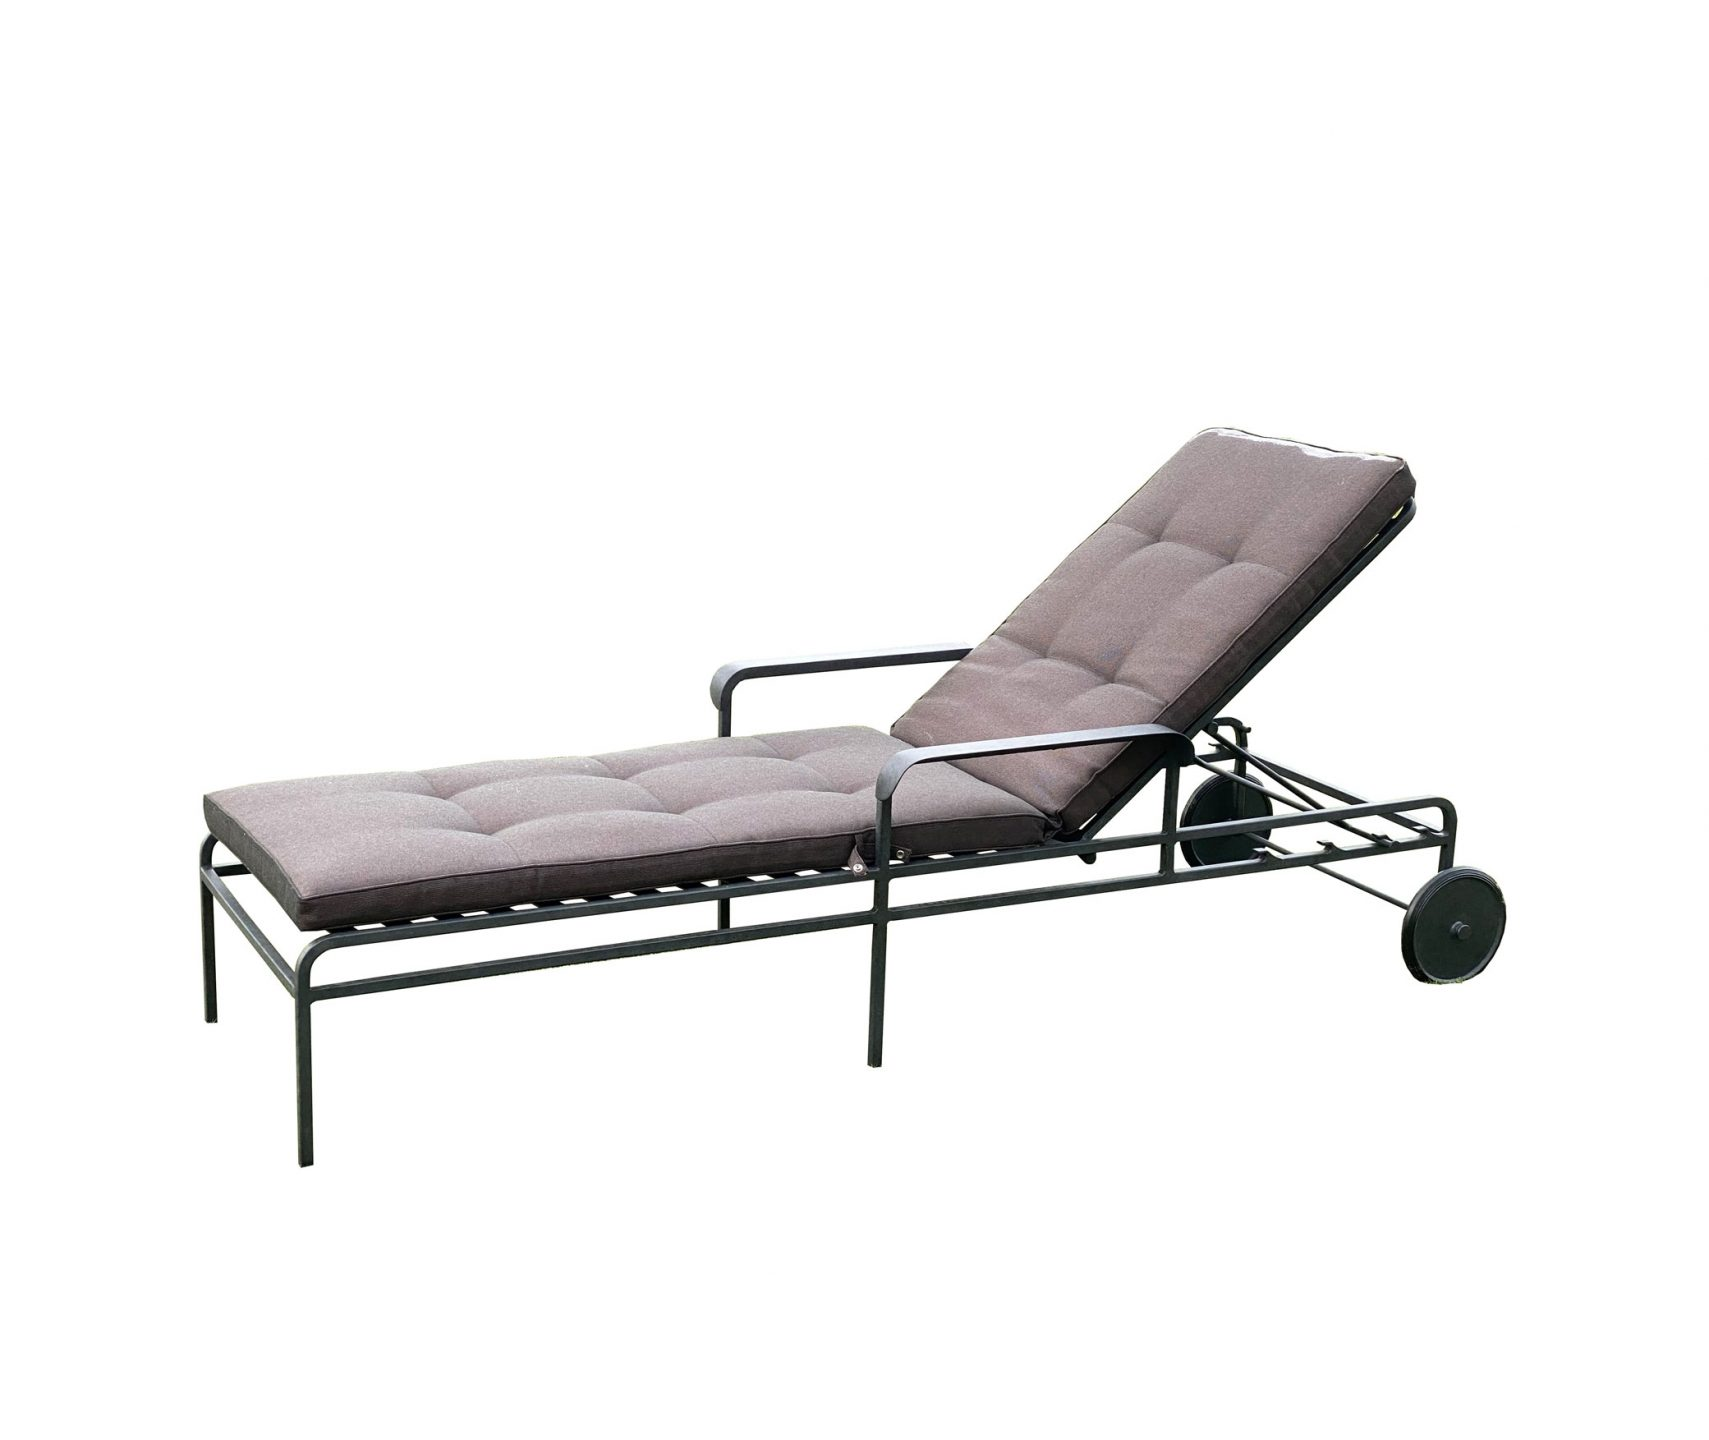 Munder-Skiles_Seibert-Chaise-Lounge-1_int_products